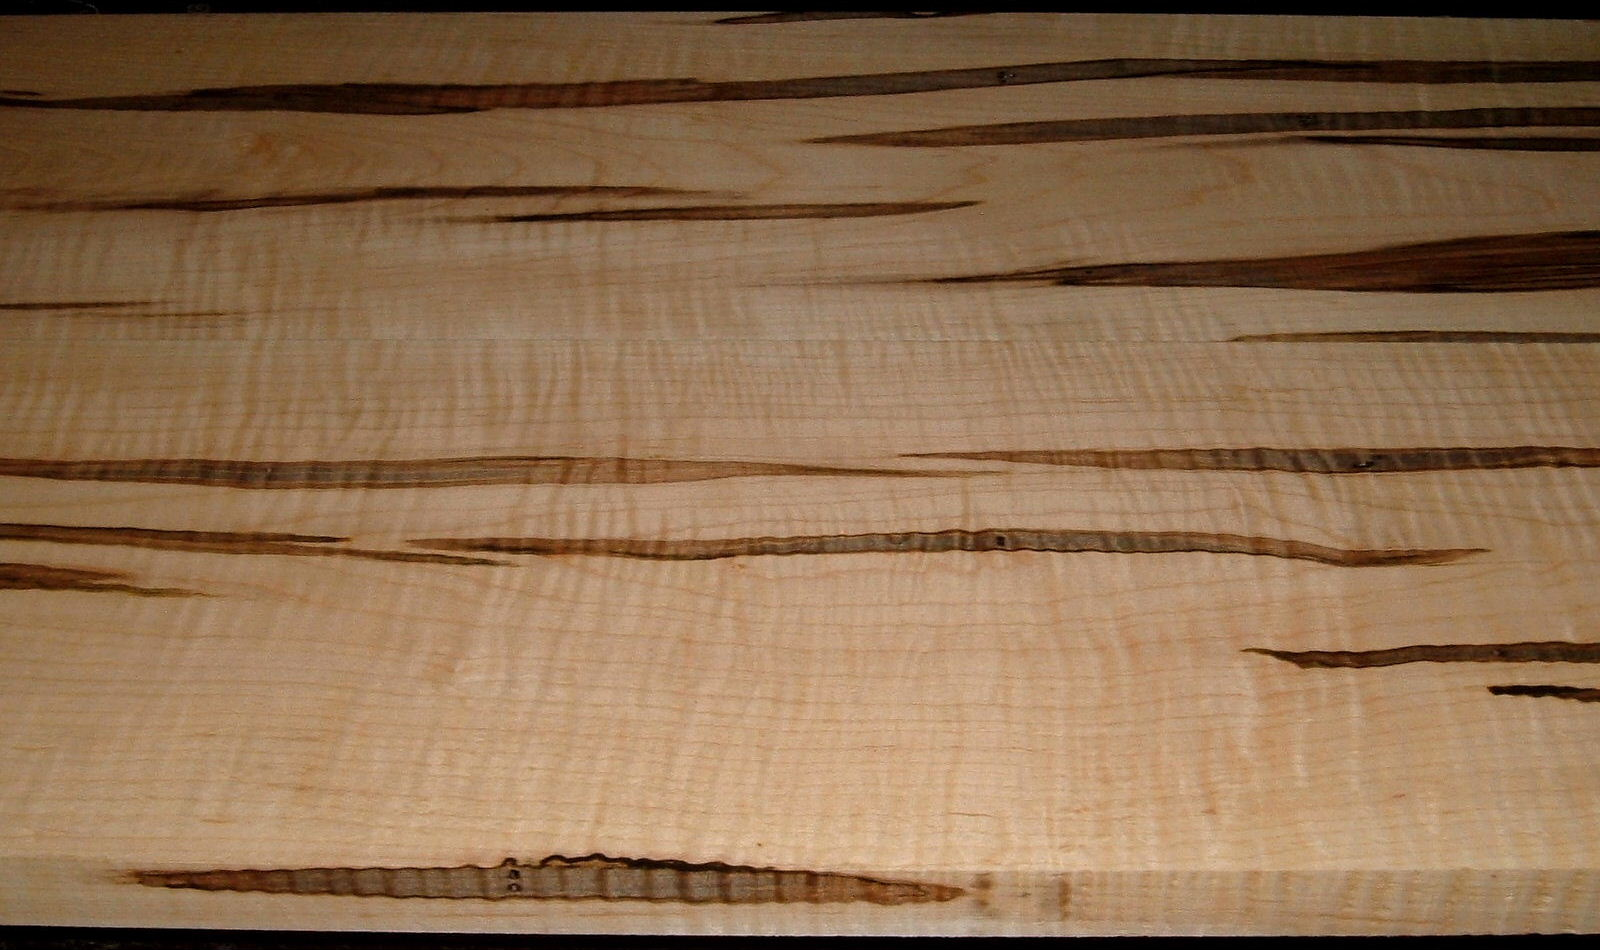 AM2005-82L, 2bds, +1x8-3/4x49+, +15/16x8-3/4x49+, Curly Tiger Ambrosia Wormy Maple, Nicely matched set